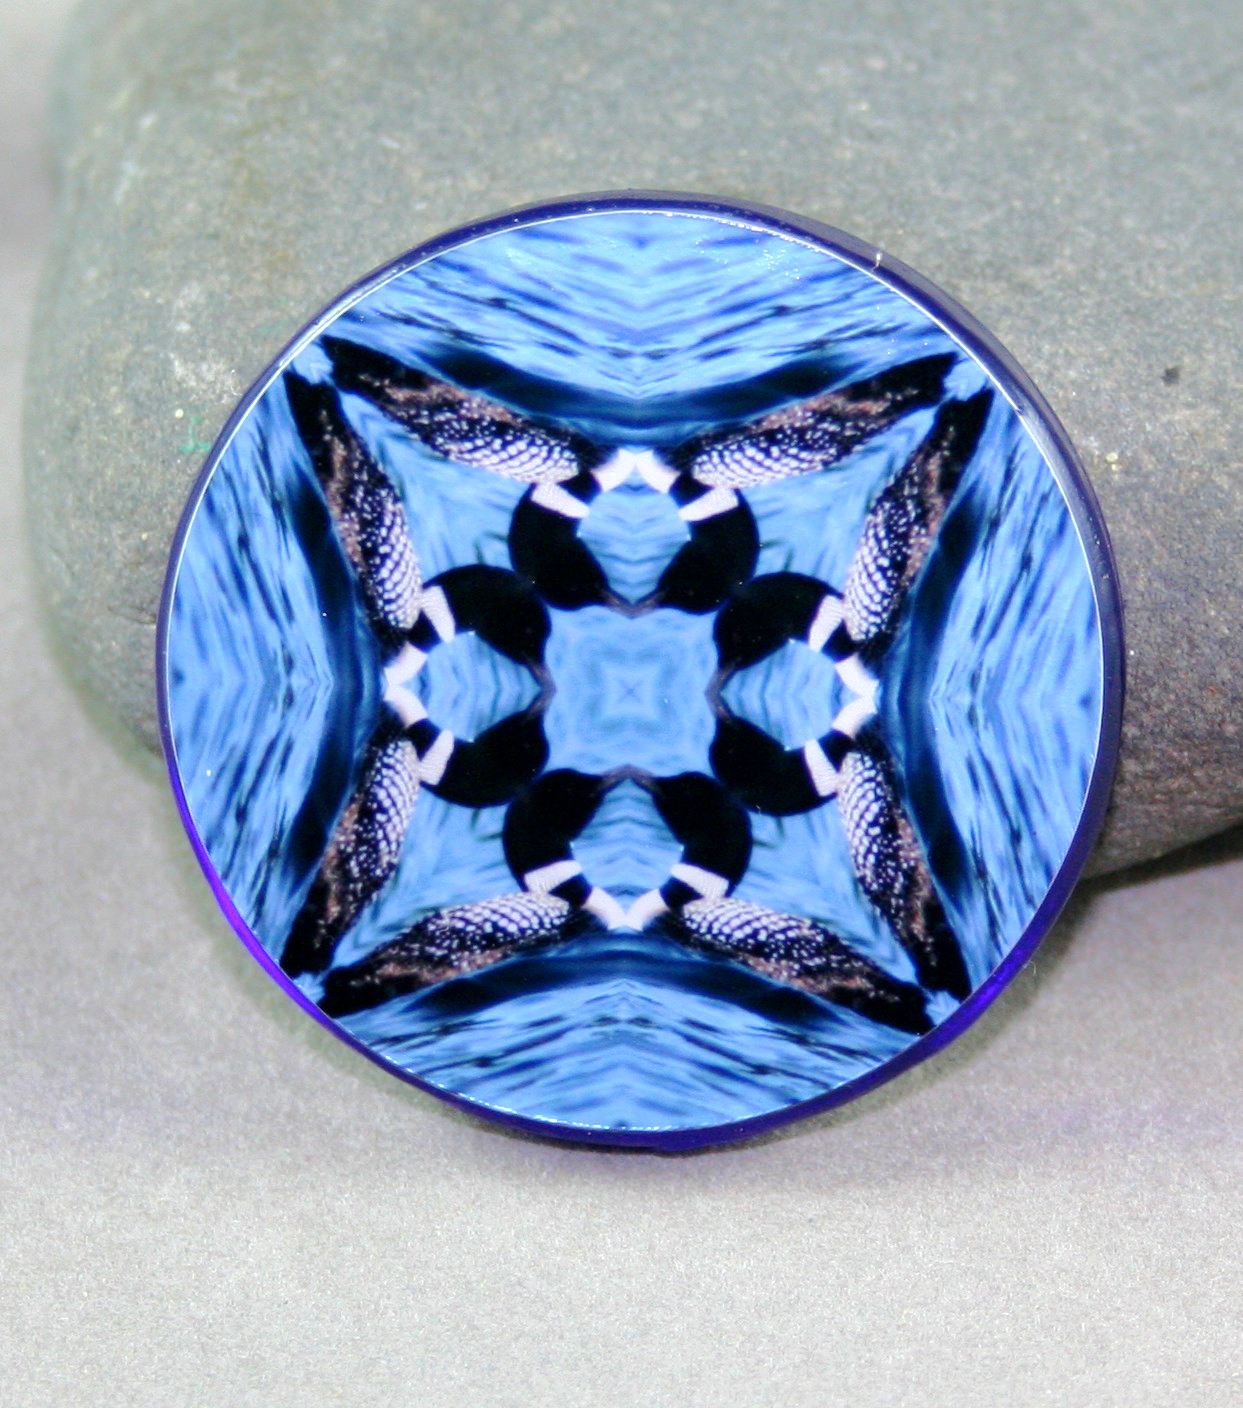 Loon Duck Magnet Glass Sacred Geometry Mandala Kaleidoscope Serene Serenade